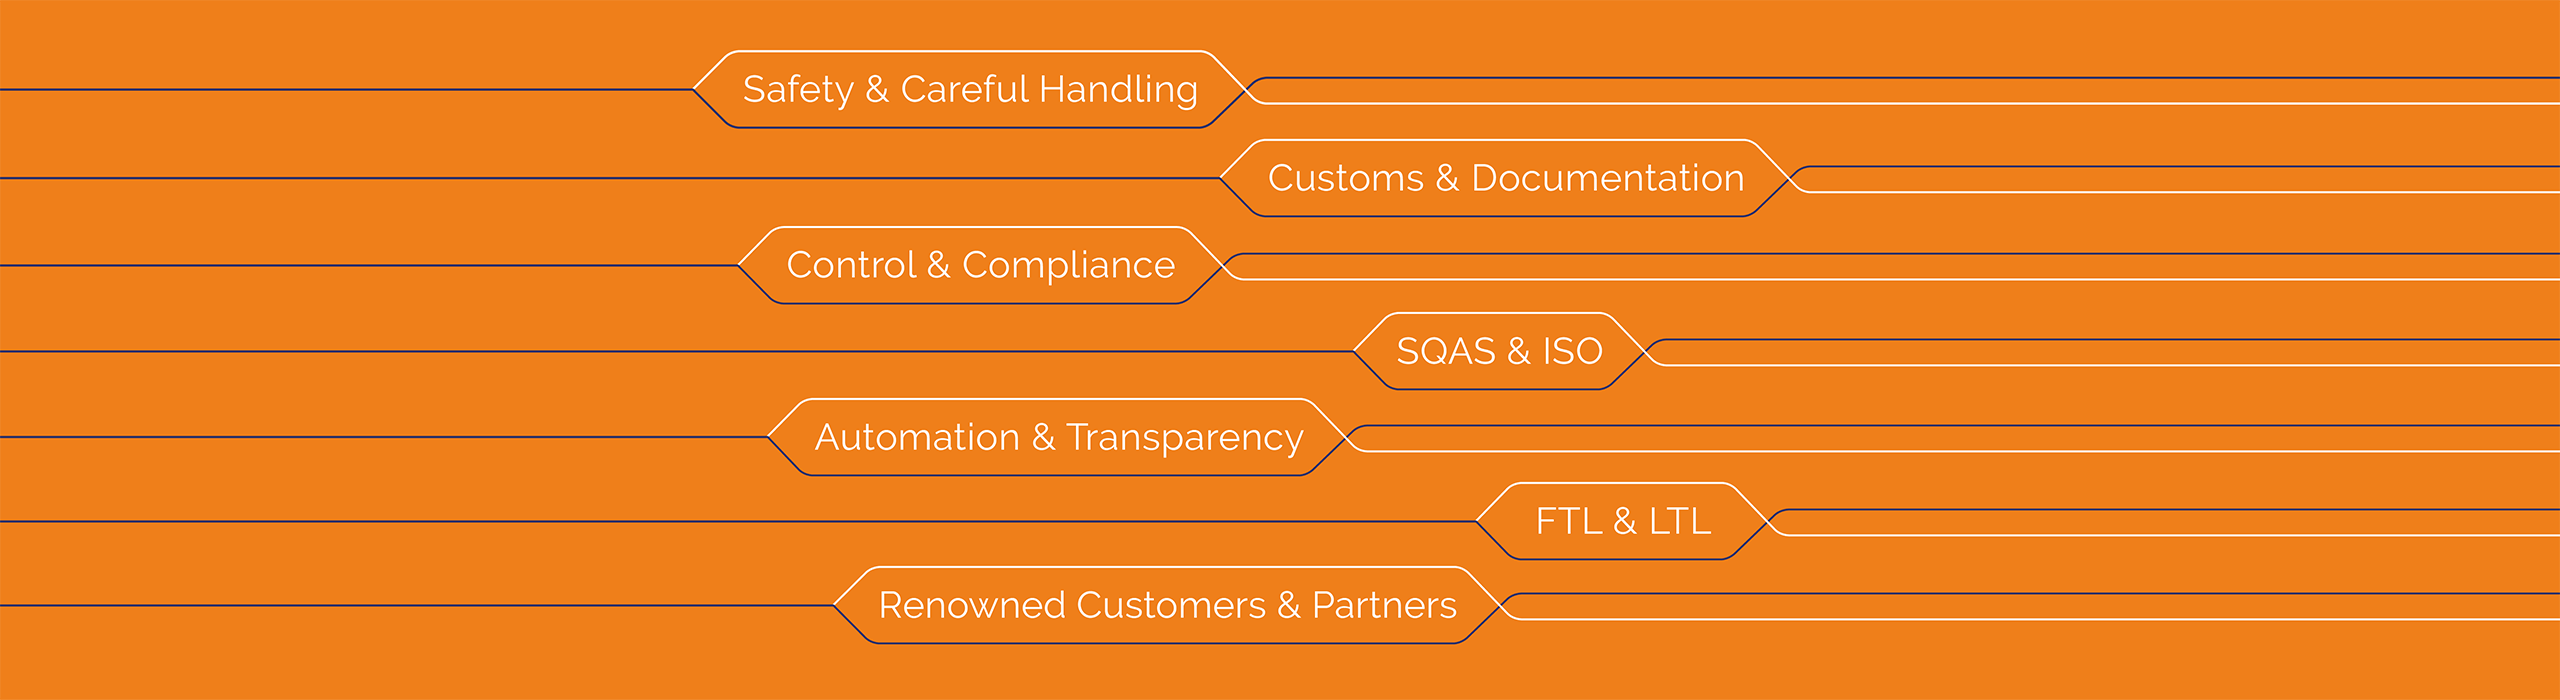 Safety & Careful Handling, Customs & Documentation, Control & Compliance, SQAS & ISO, Automation & Transparency, FTL & LTL, Renowned Customers & Partners